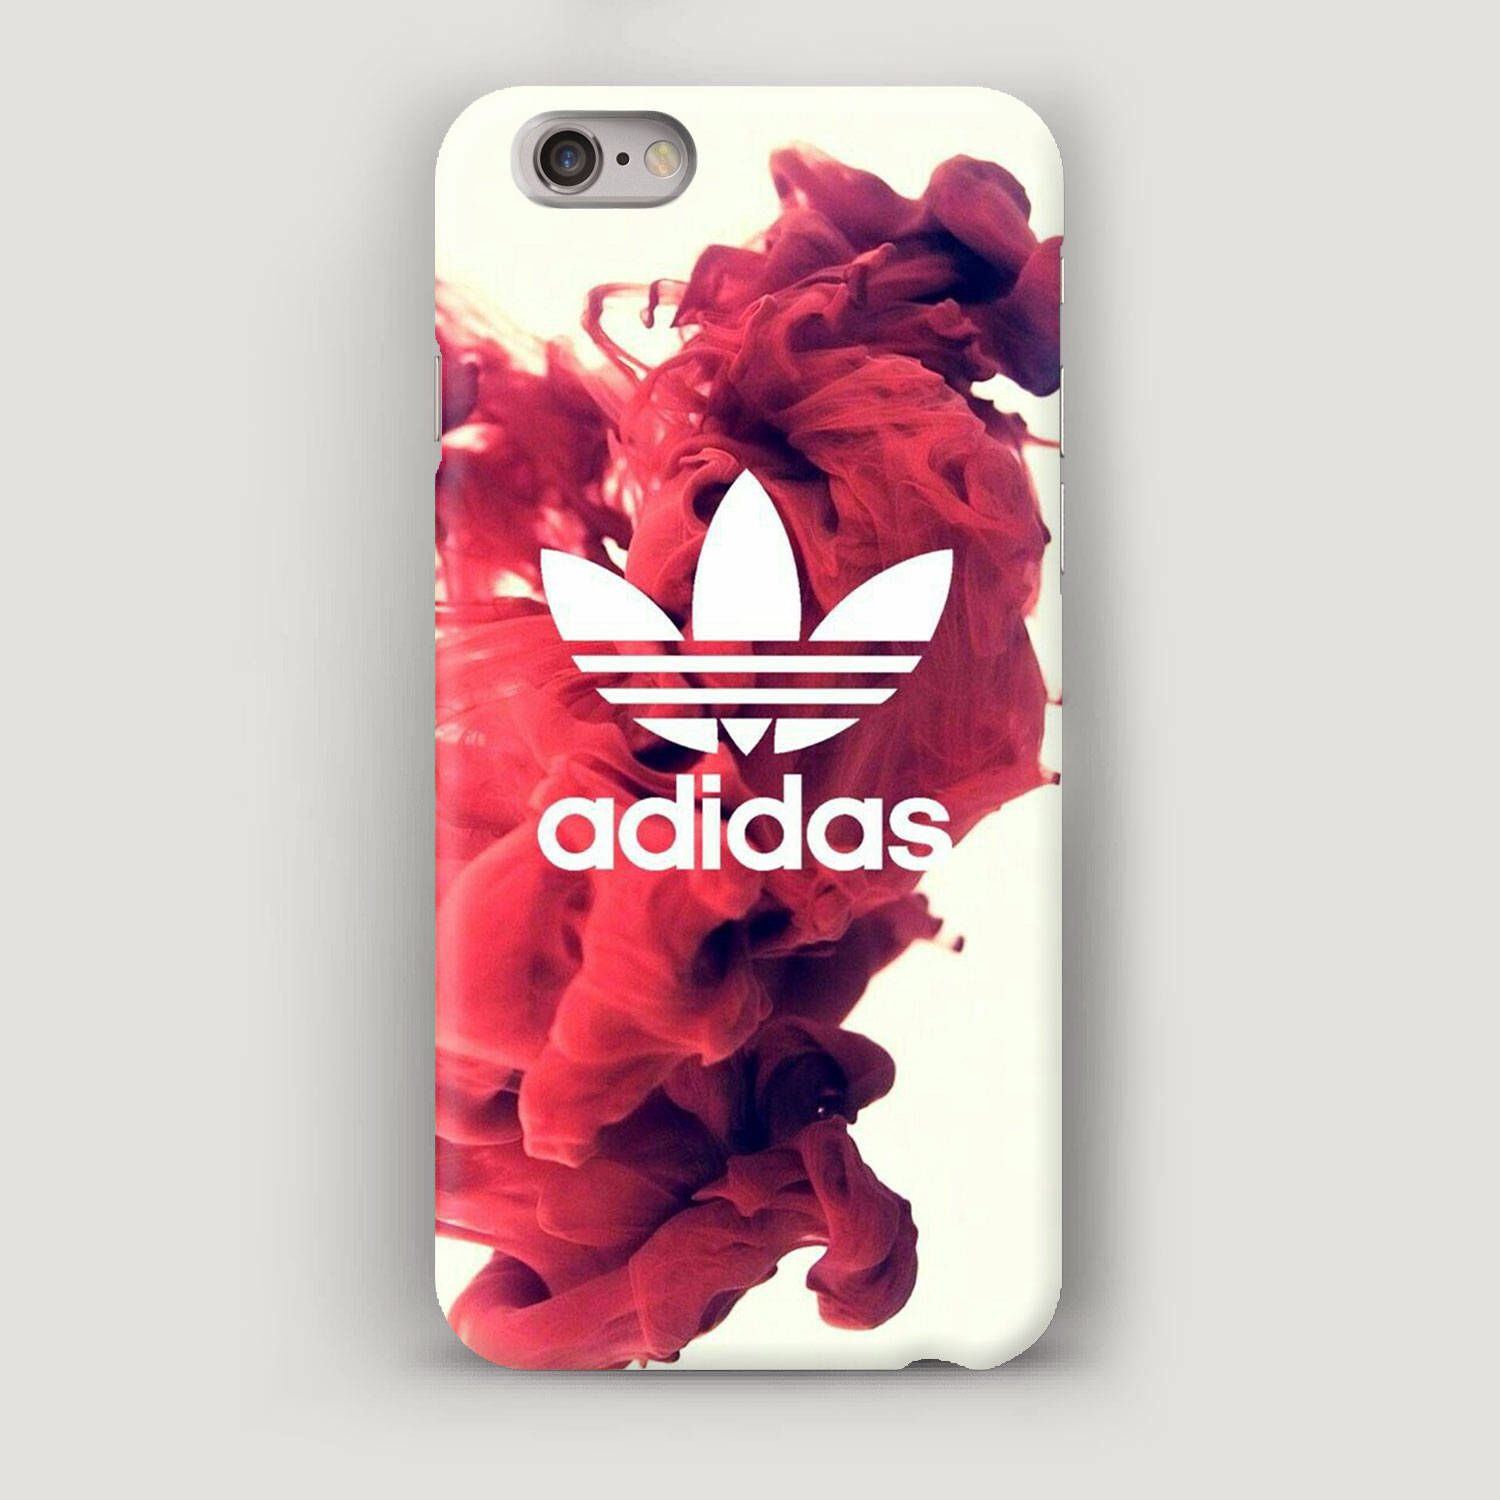 cover iphone 6s adidas rosa